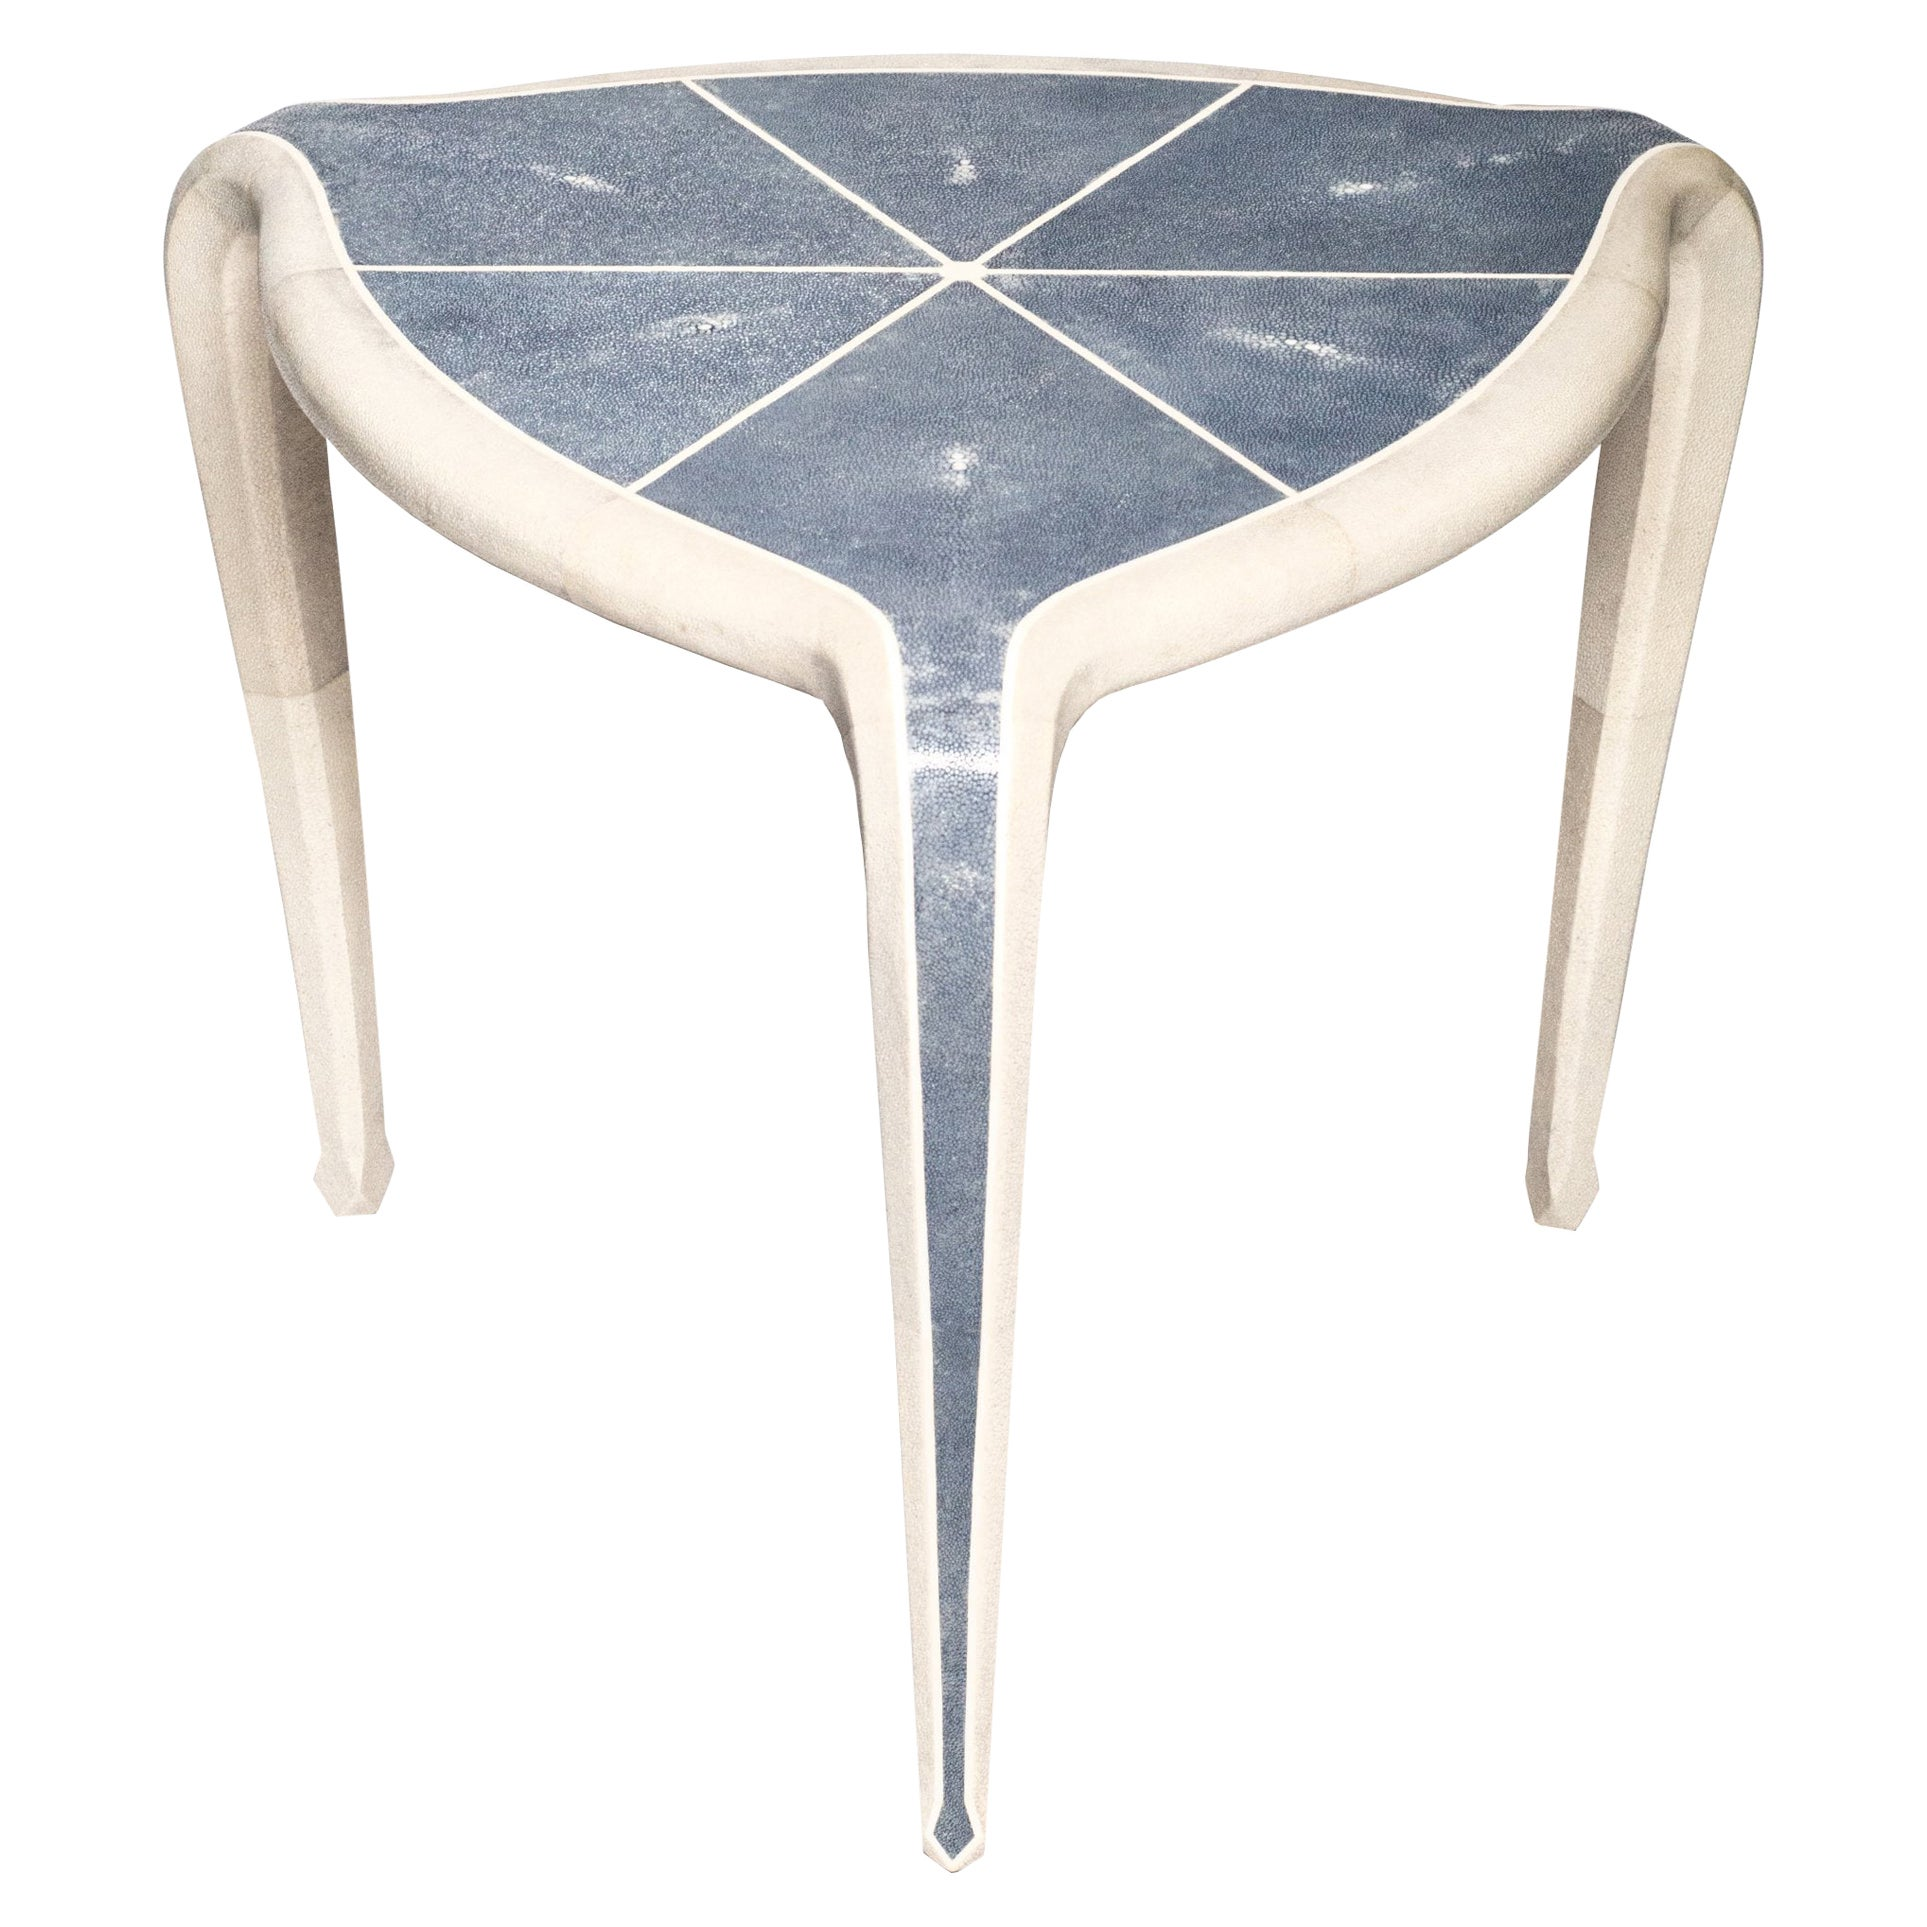 Contemporary Authentic Shagreen Tripod Table in Navy